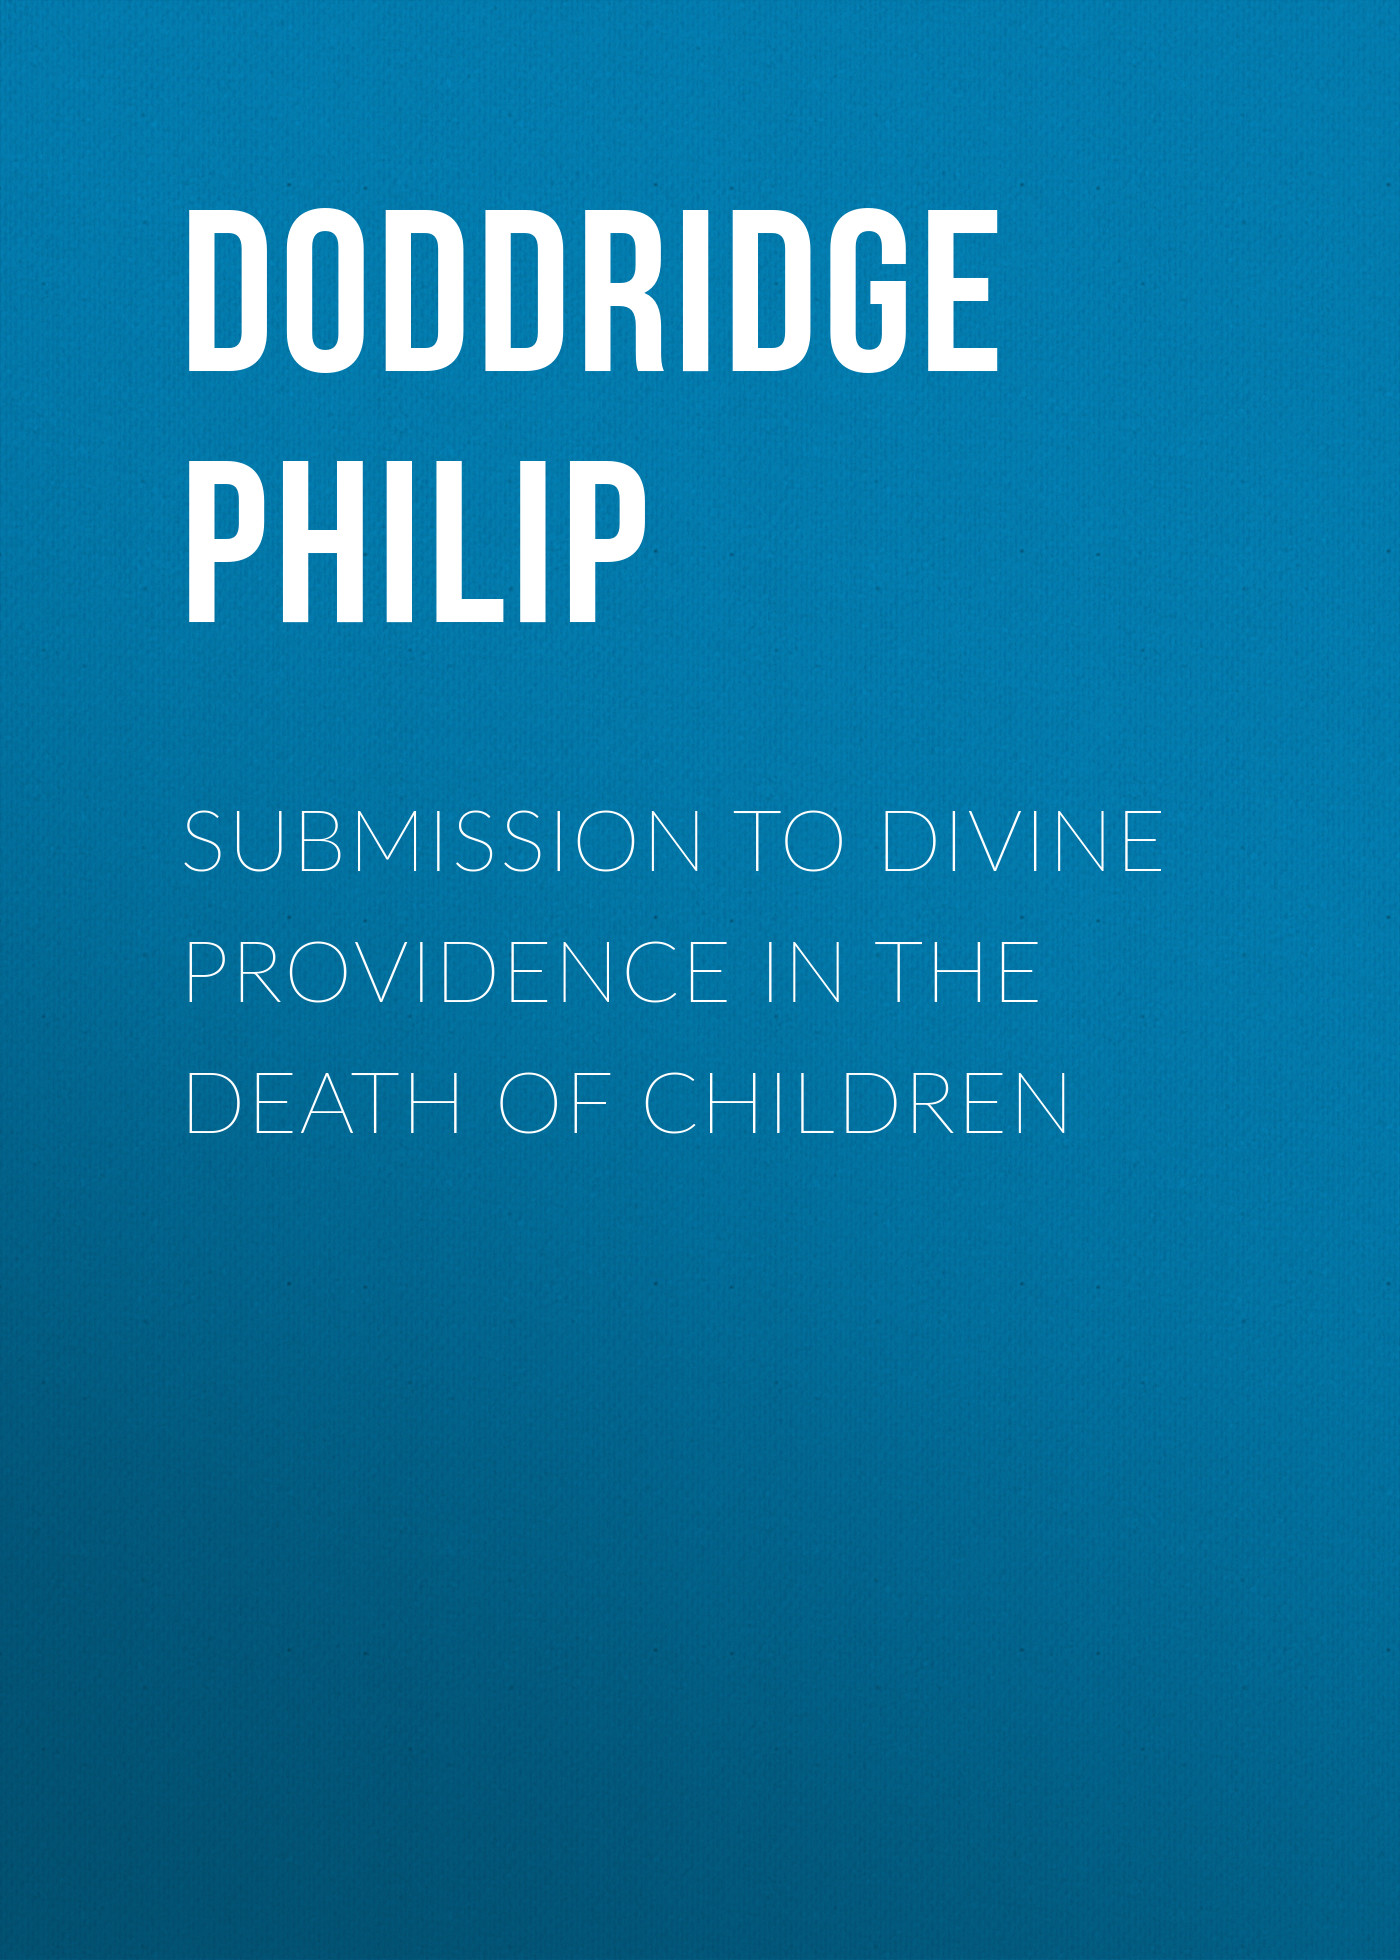 Doddridge Philip Submission to Divine Providence in the Death of Children roger l phillips divine providence